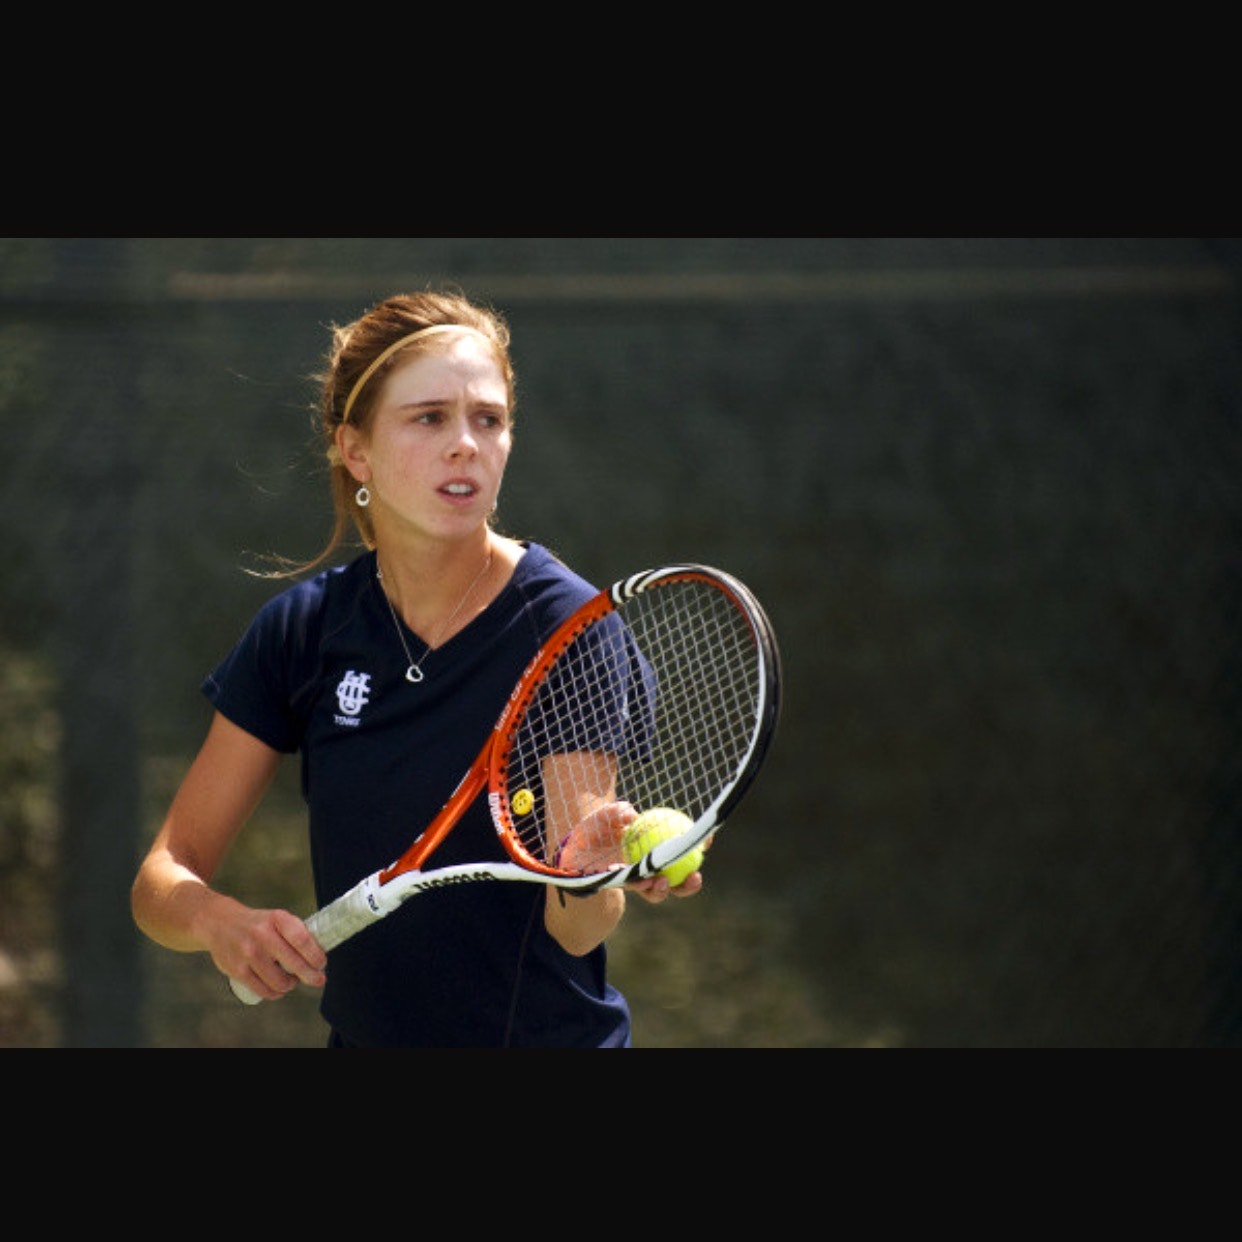 Kristina S. teaches tennis lessons in San Jose, CA